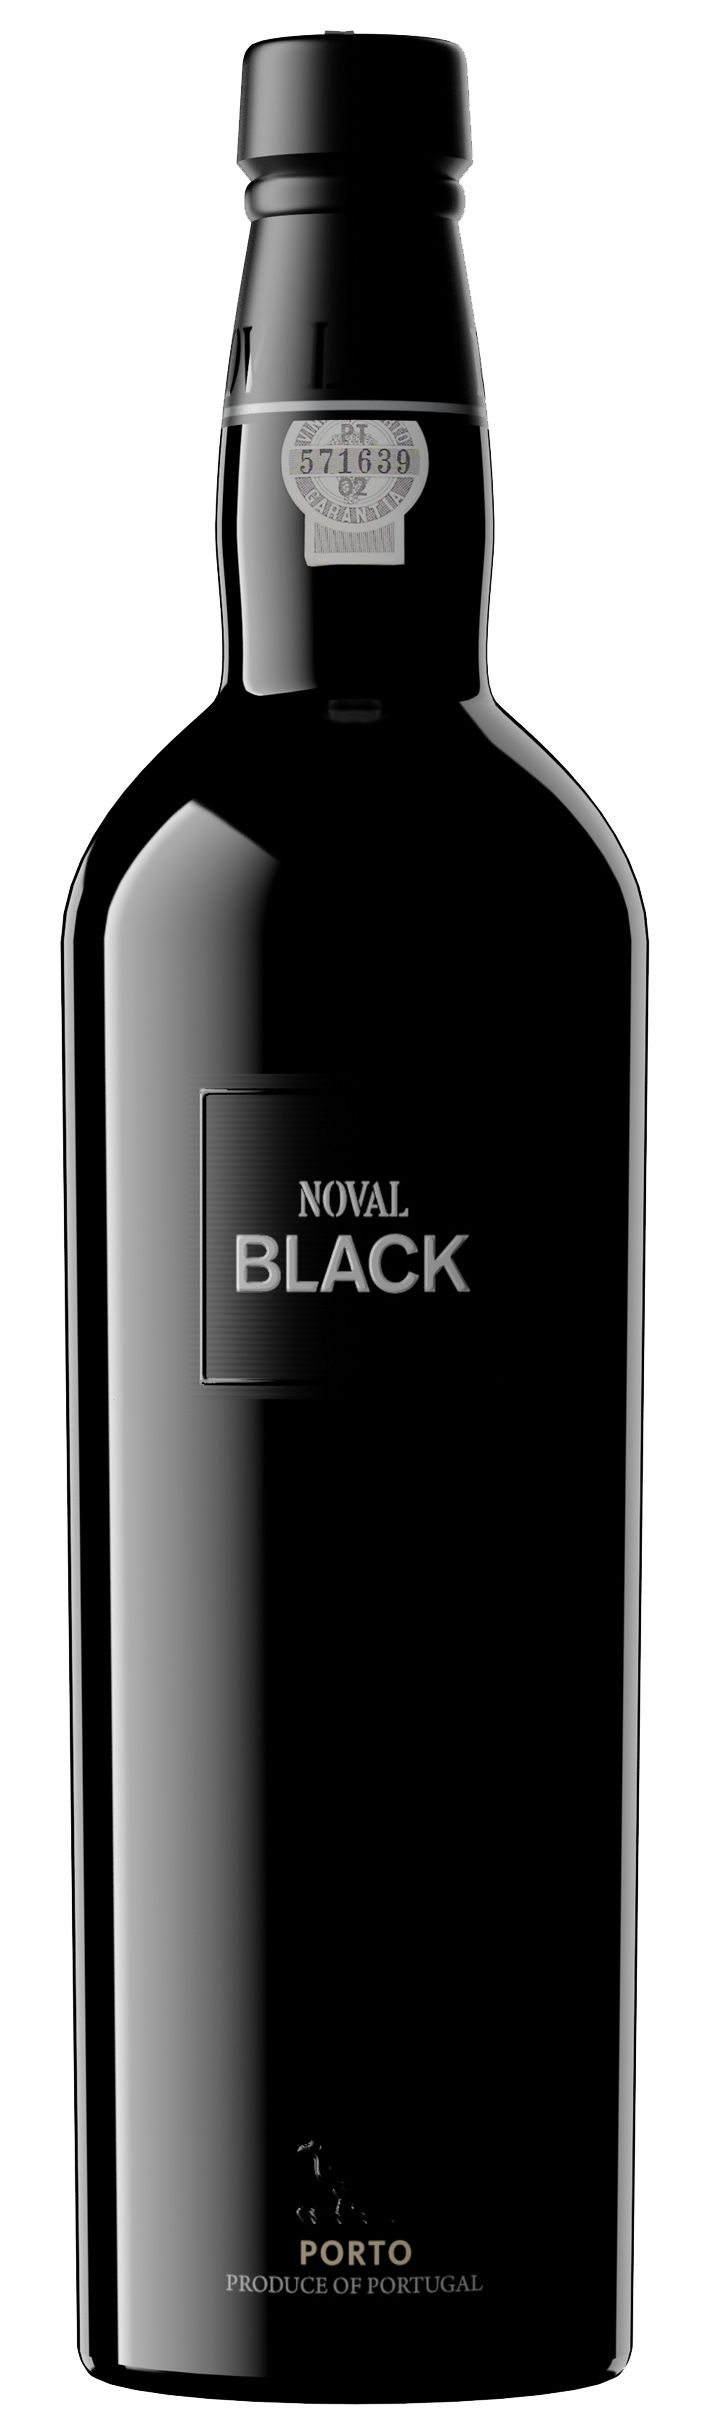 Contrast and simplicity: this bottle wears them well. Still, to a person like me it is kind of boring, but I do recognize the appeal it would have to many.